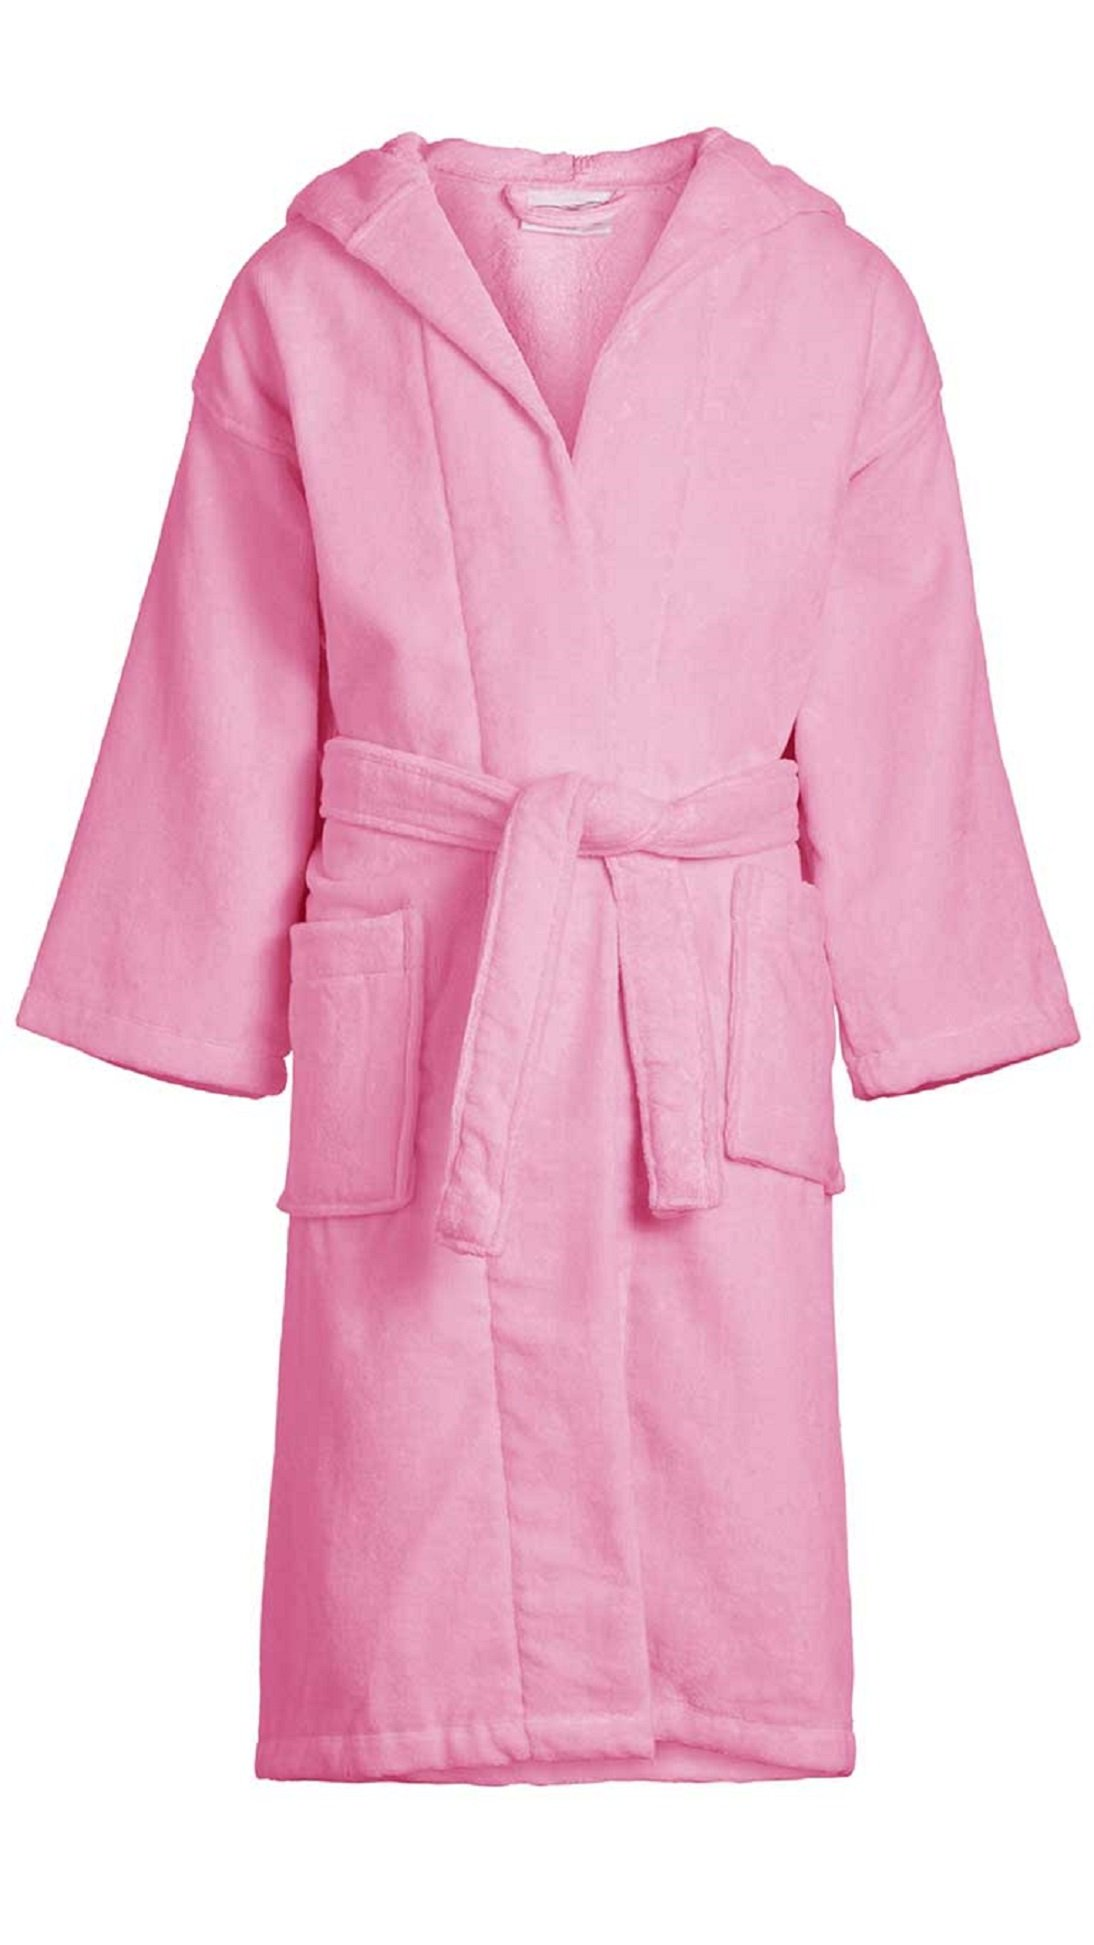 Velour Hooded Bathrobe for Boys Girls 100% Cotton Velour Kid's Robe Wholesale 6 Pcs Pink Large